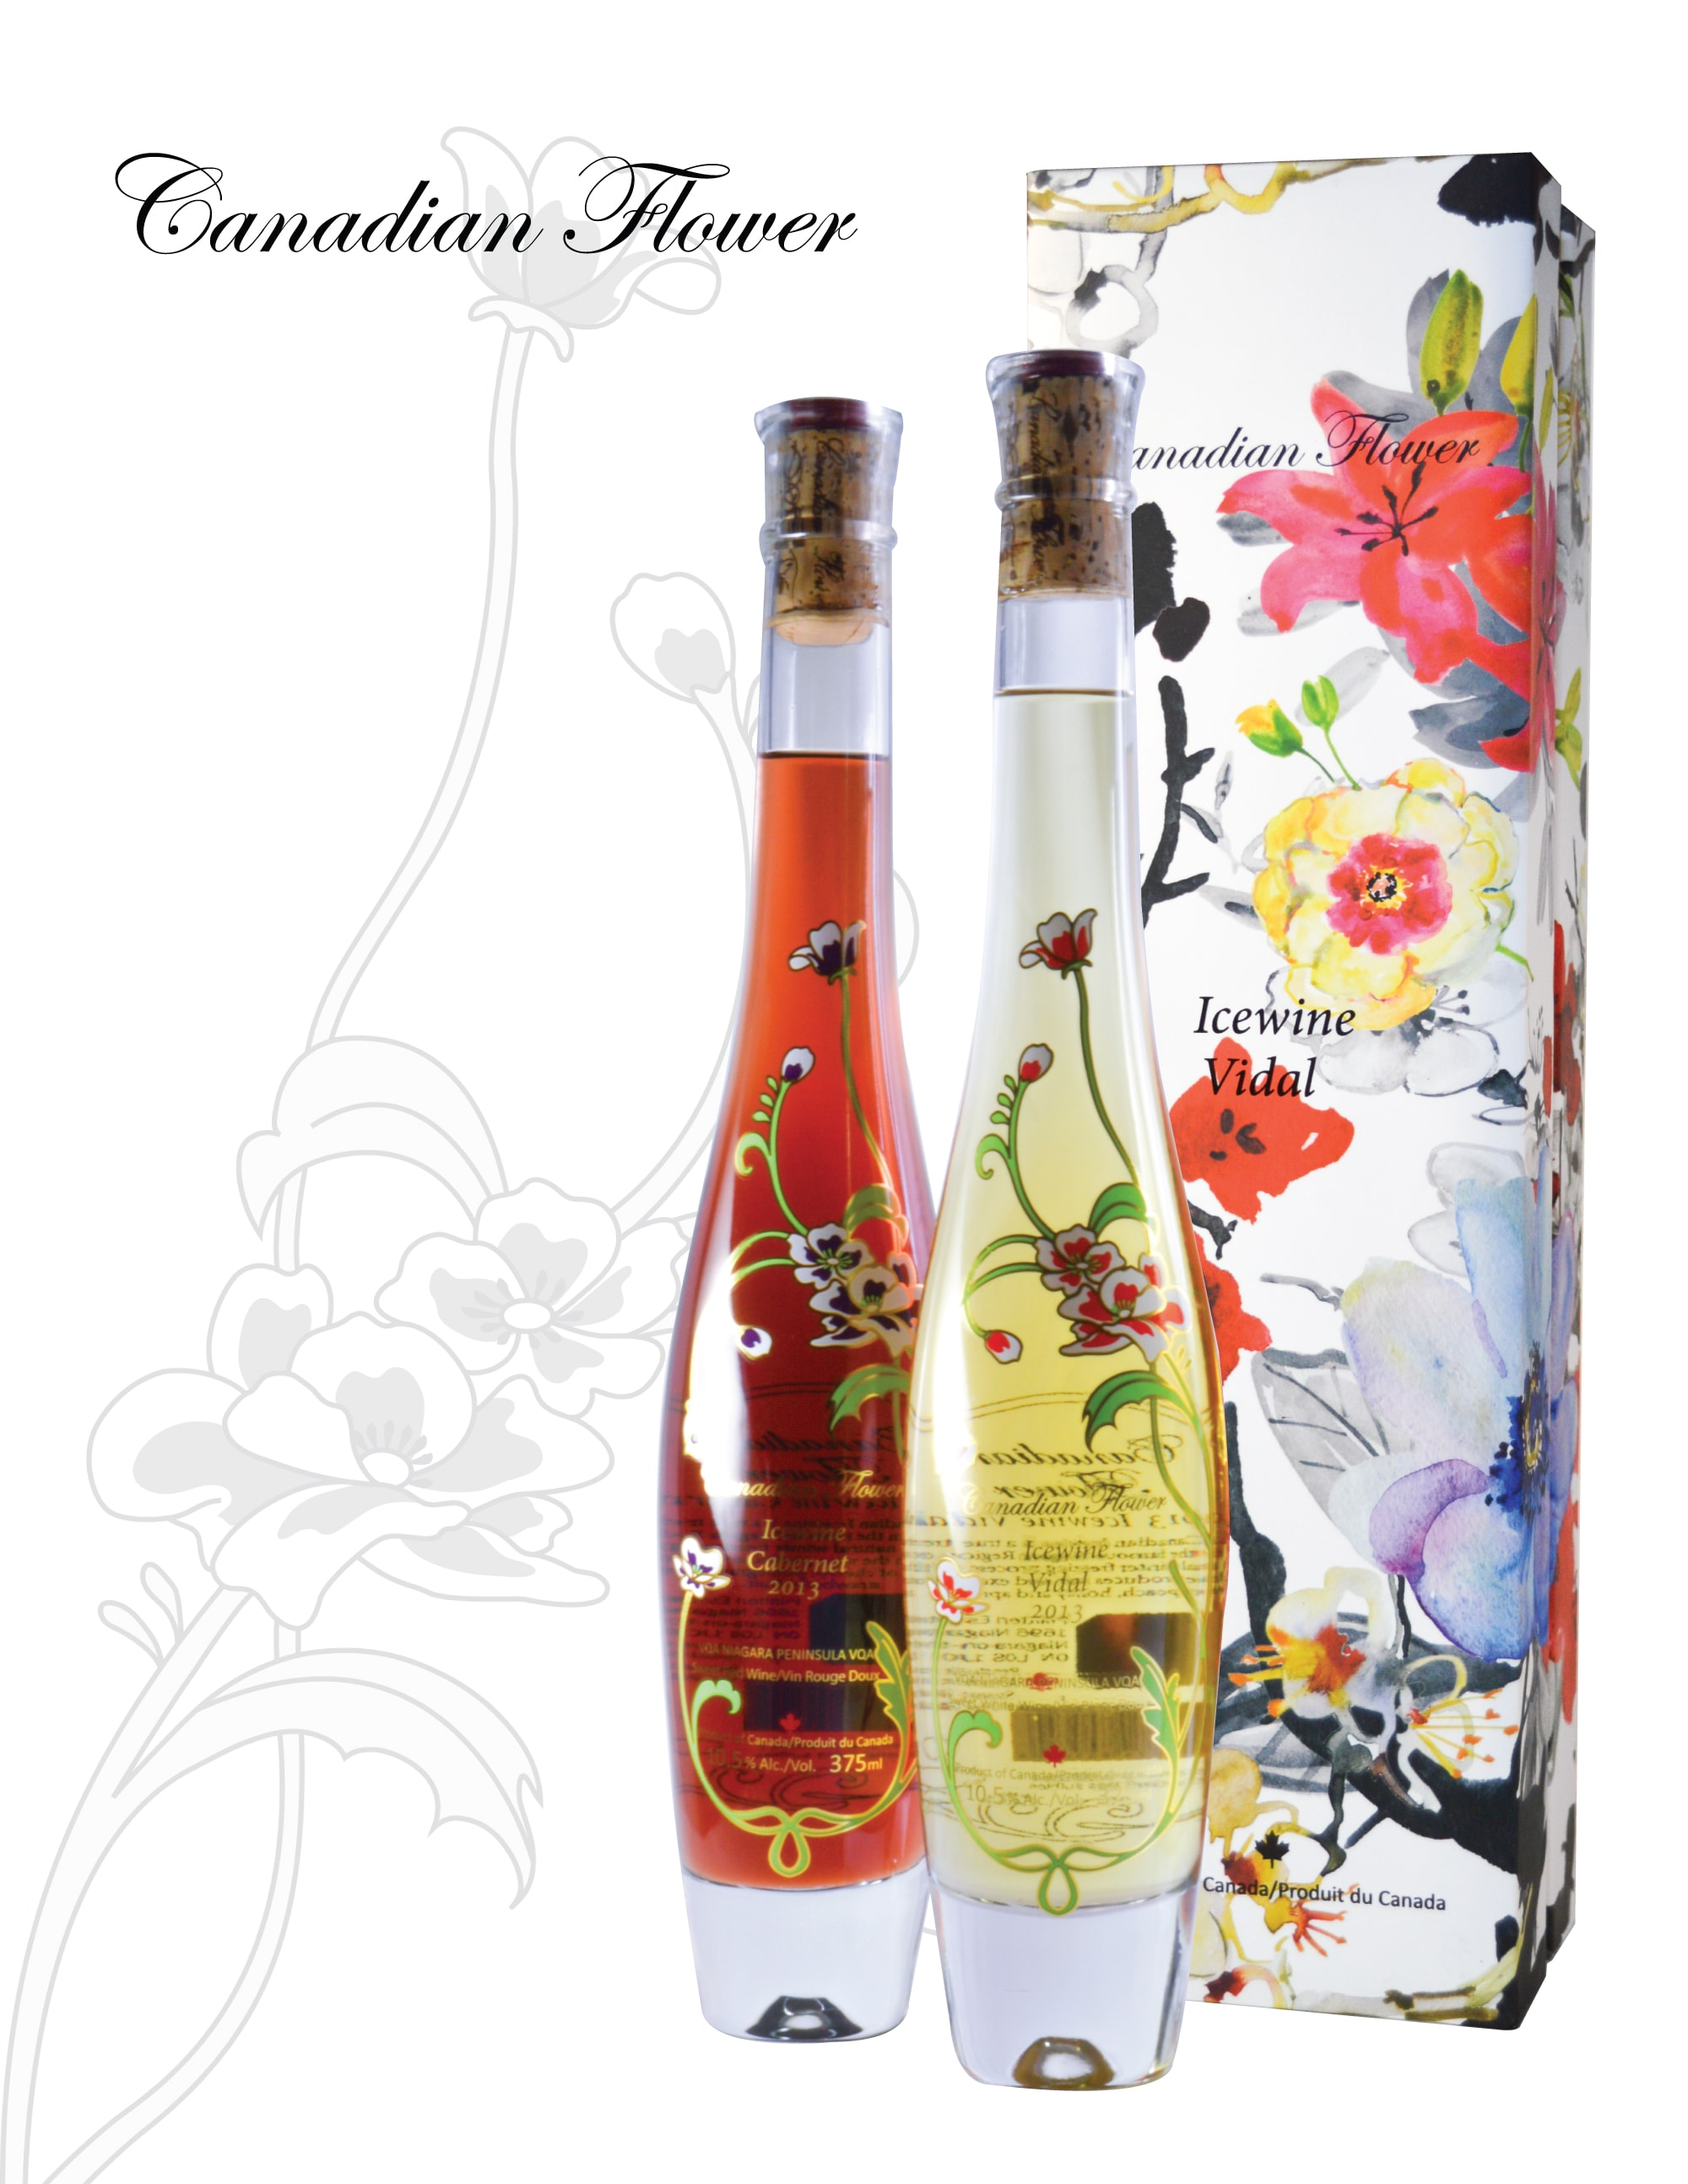 Pillitteri's Canadian Flower Icewine